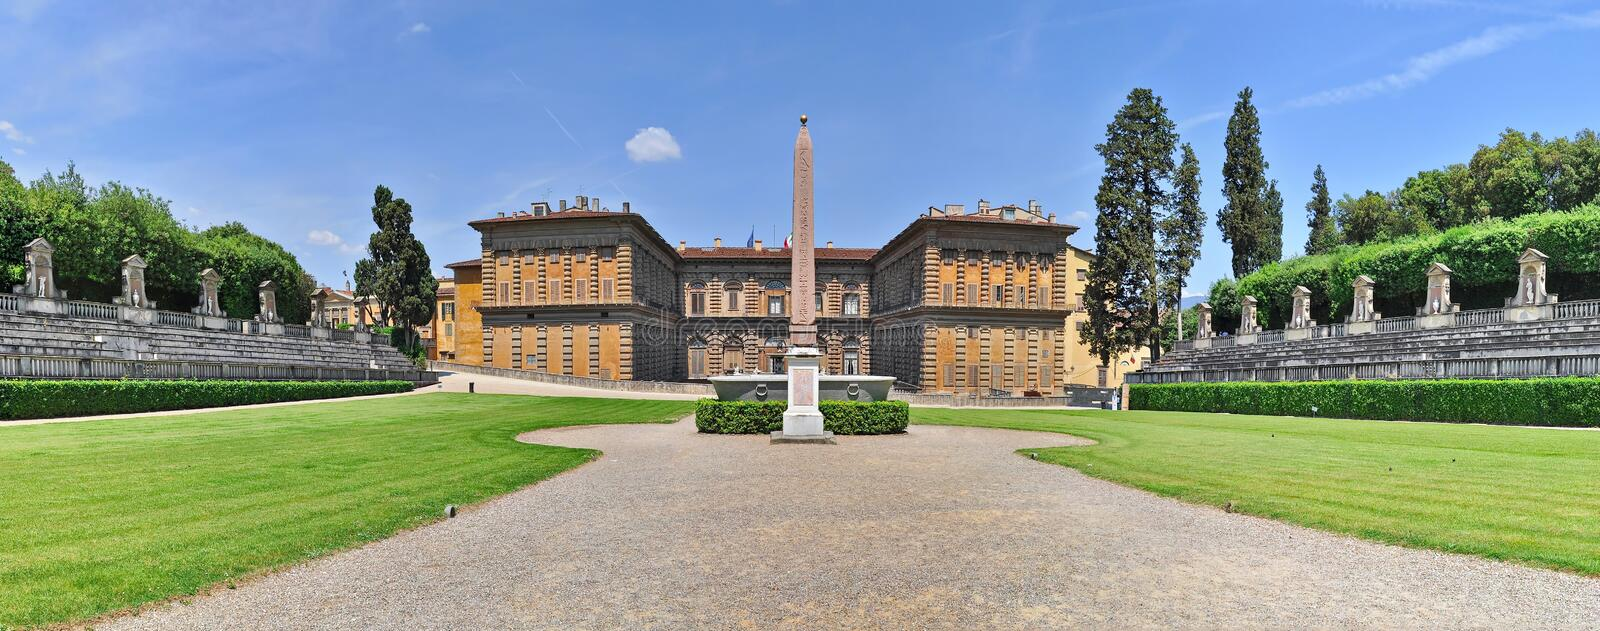 Boboli Gardens and Pitti Palace in Florence royalty free stock photos